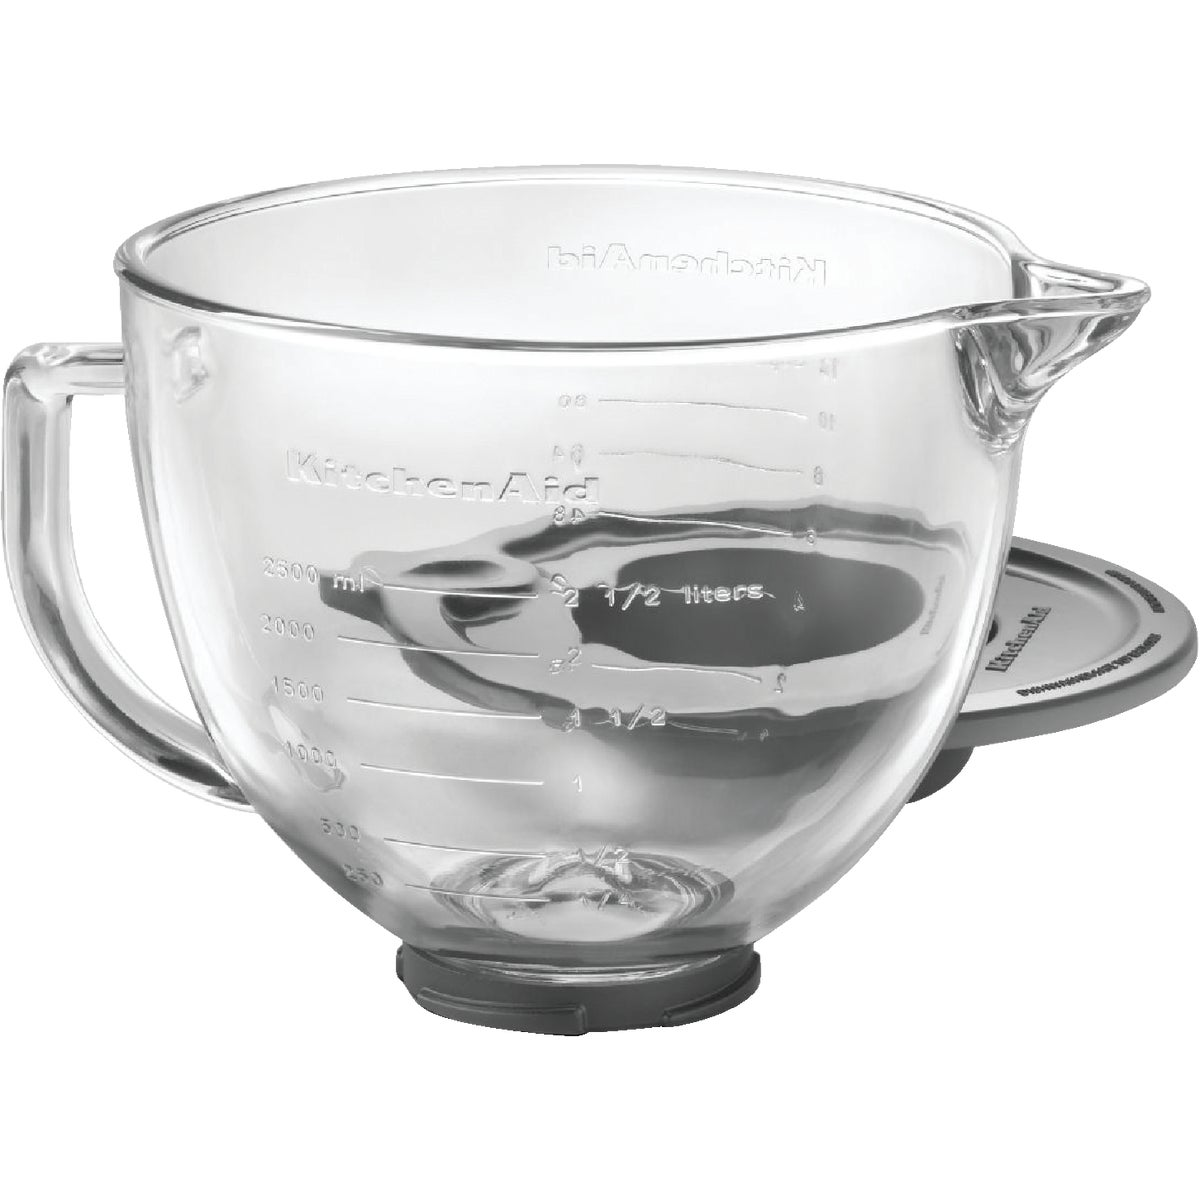 5QT GLASS BOWL - K5GB by Kitchenaid Inc